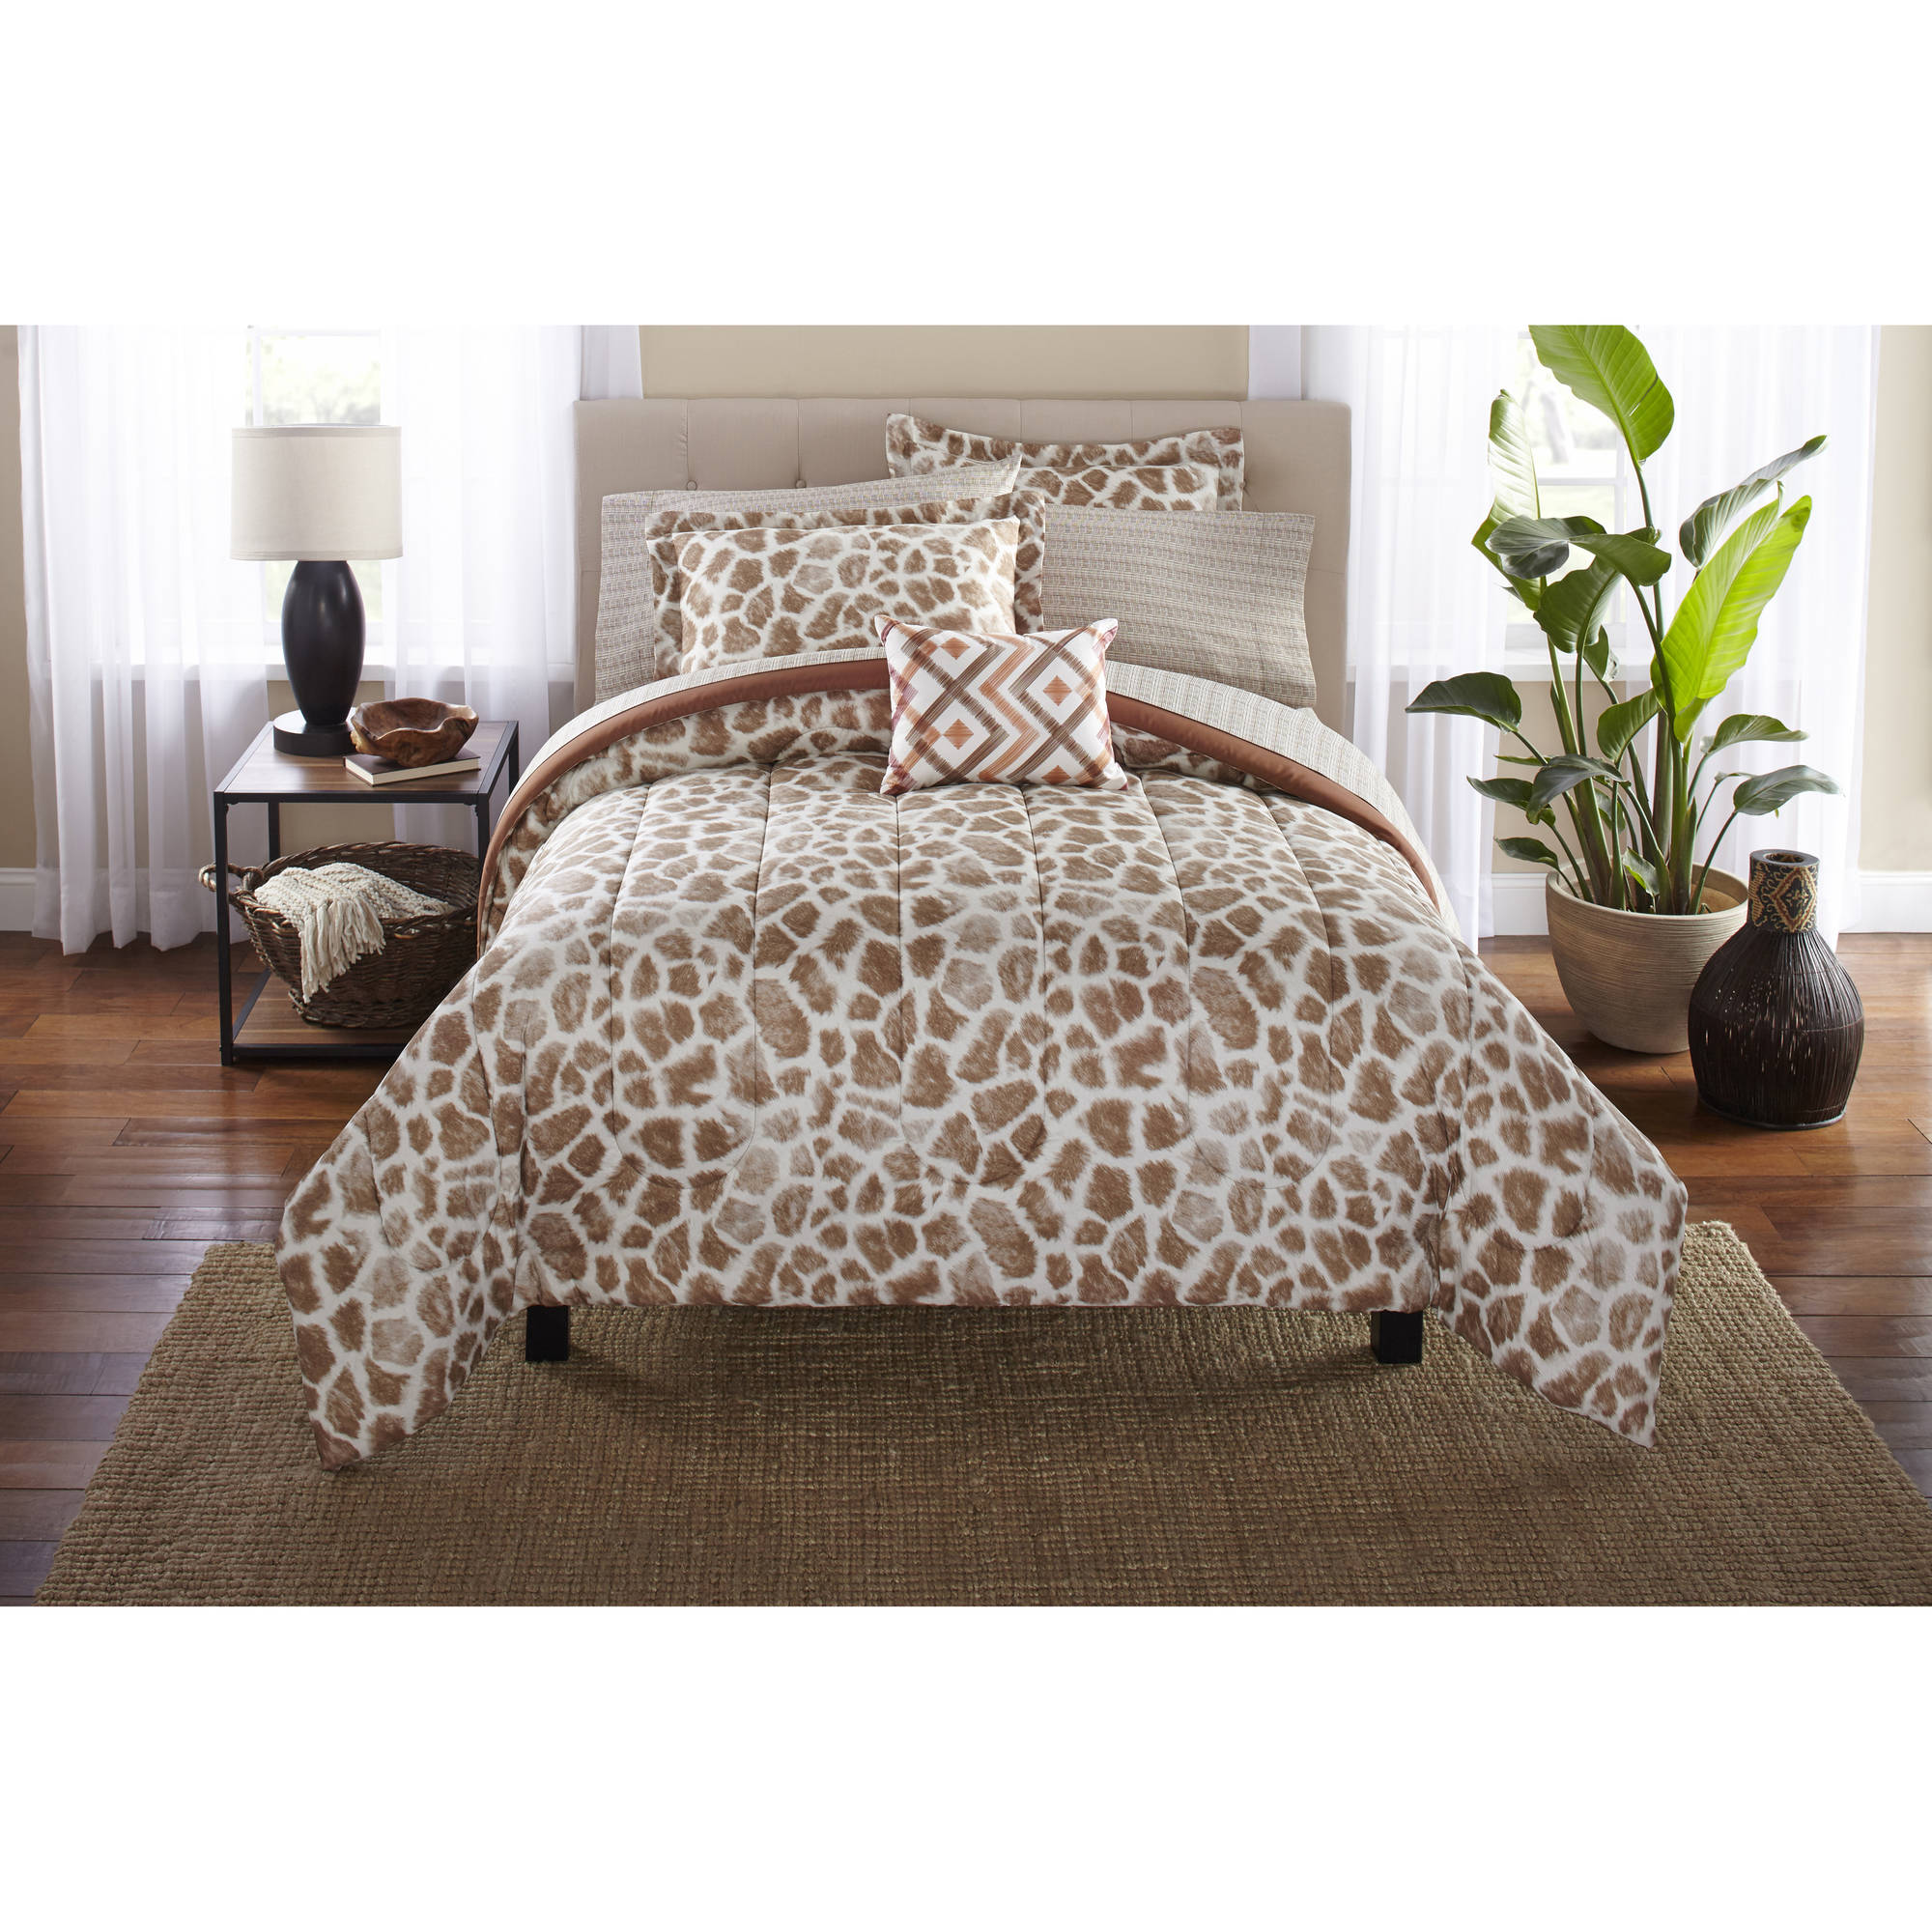 Super Mainstays Bed in a Bag Bedding Comforter Set, Giraffe - Walmart.com ZC01